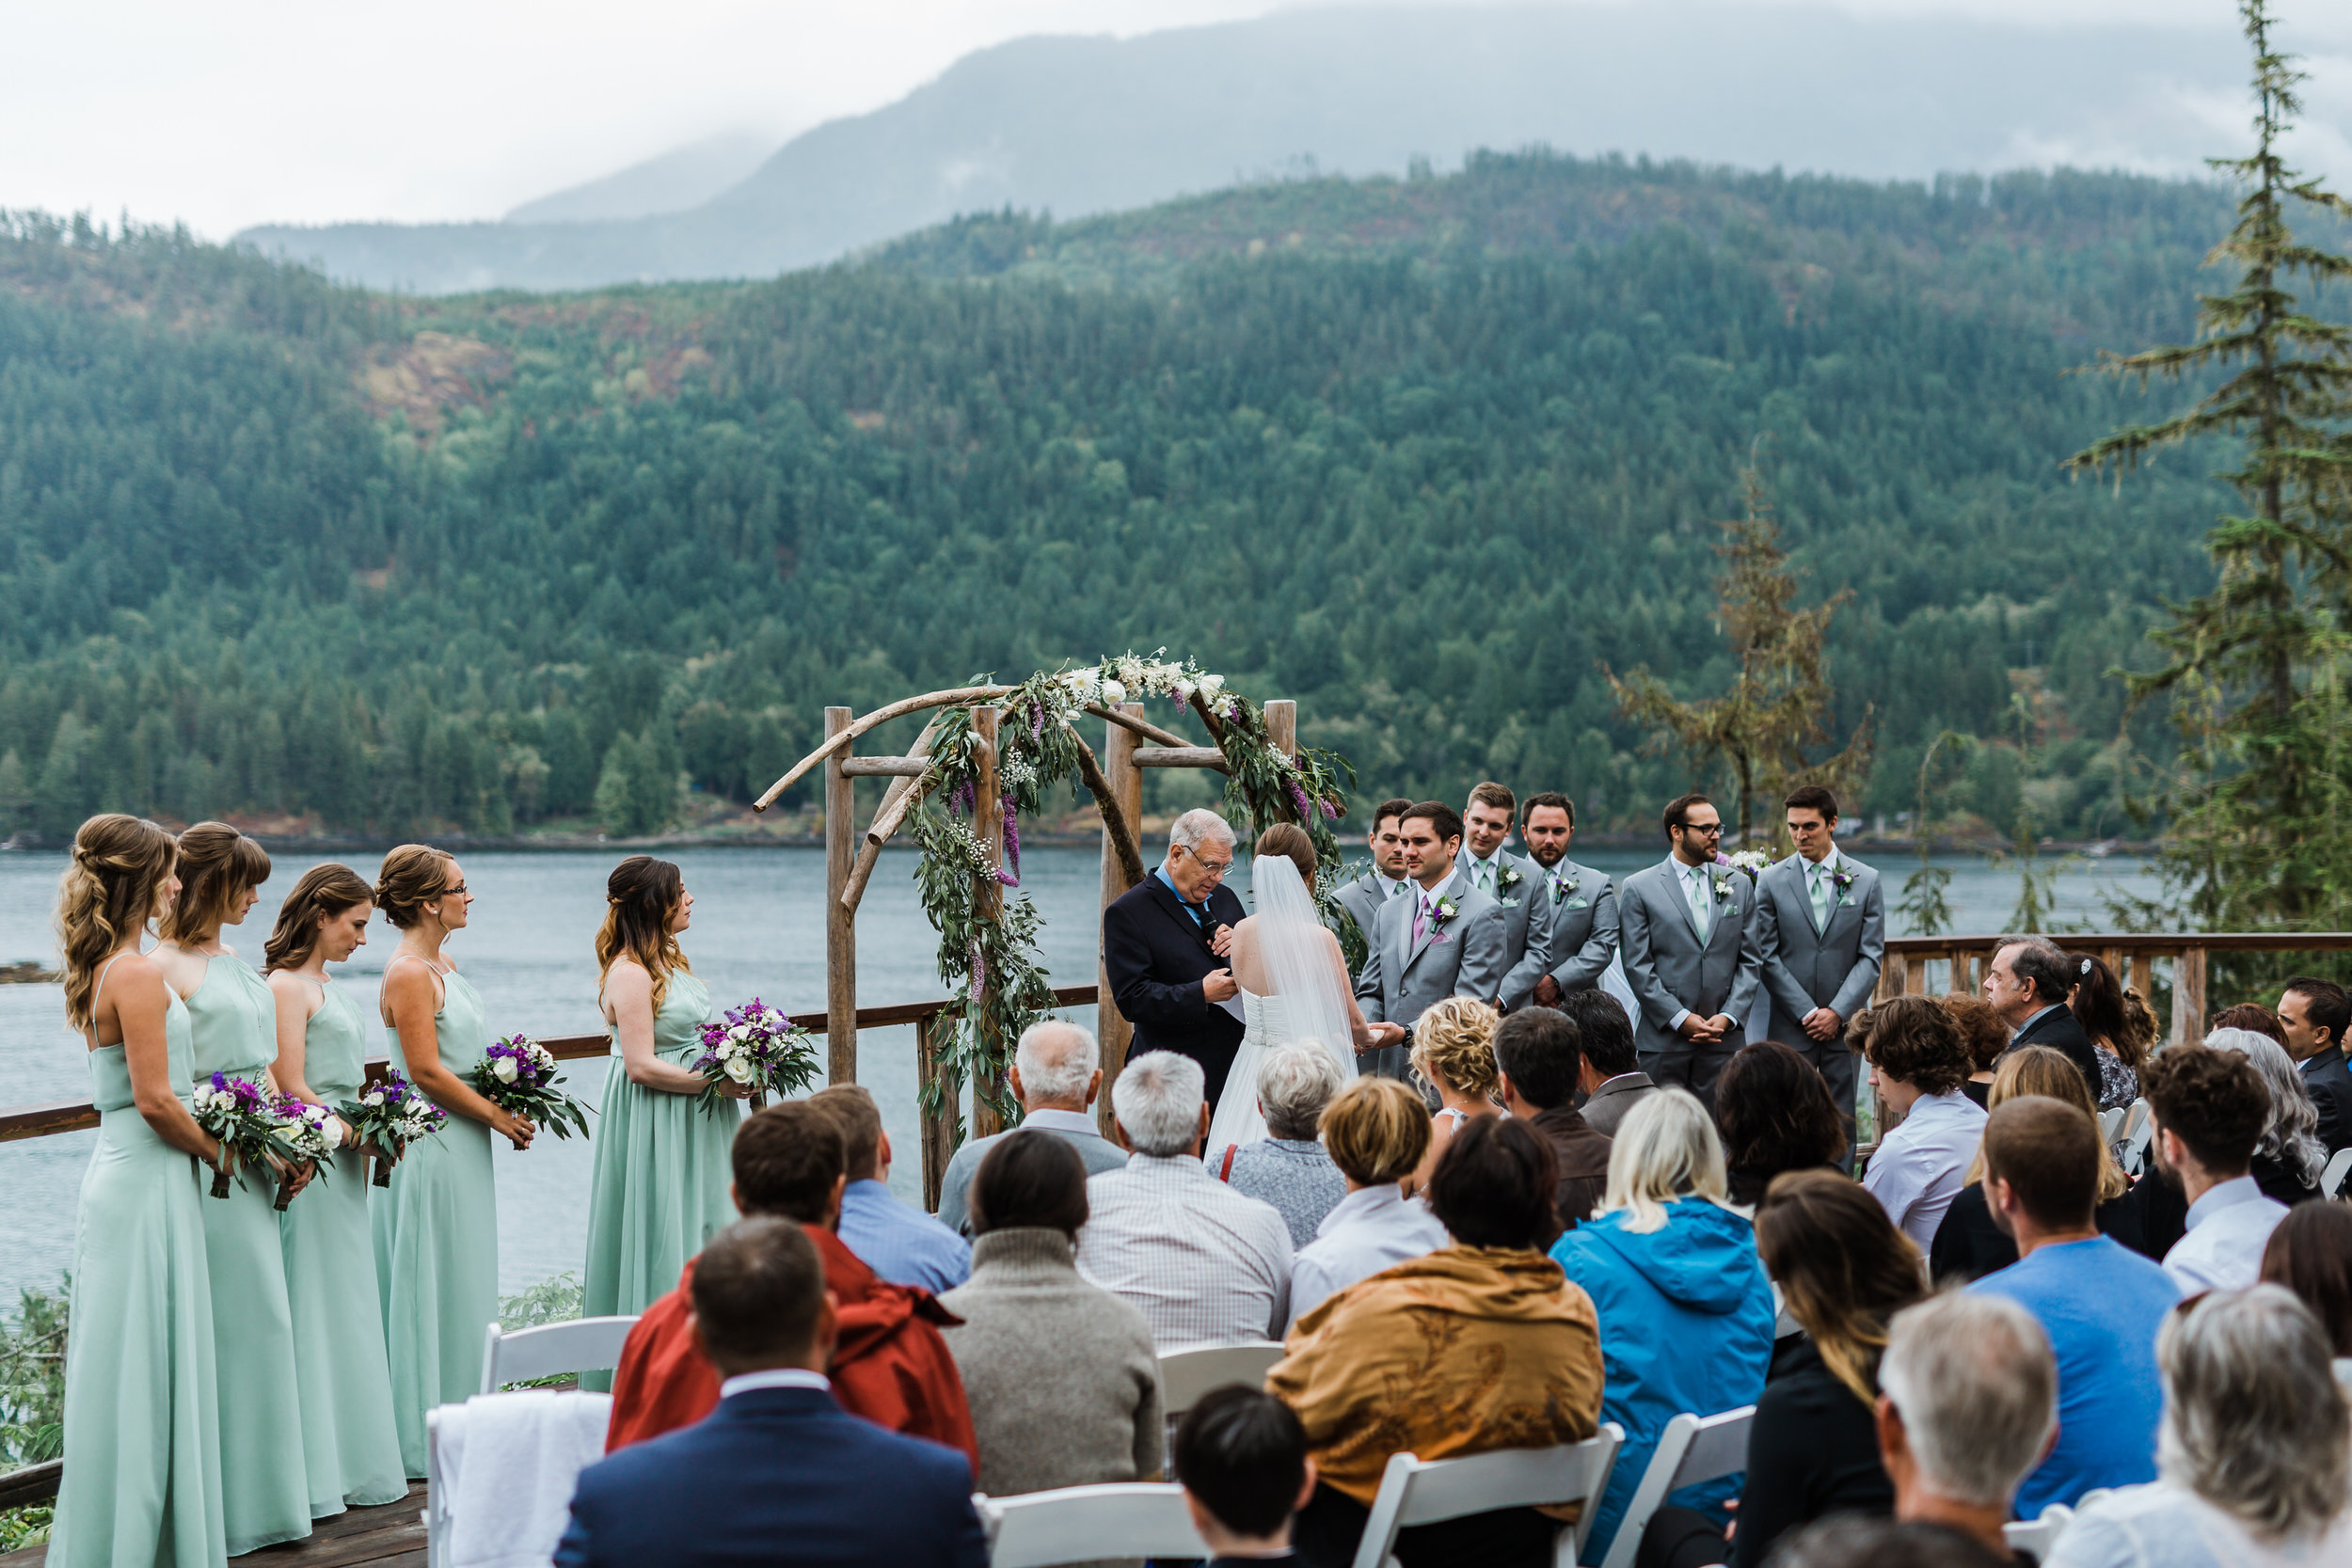 West Coast Wilderness Lodge Wedding Photos - Vancouver Wedding Photographer & Videographer - Sunshine Coast Wedding Photos - Sunshine Coast Wedding Photographer - Jennifer Picard Photography - IMG_4716.jpg